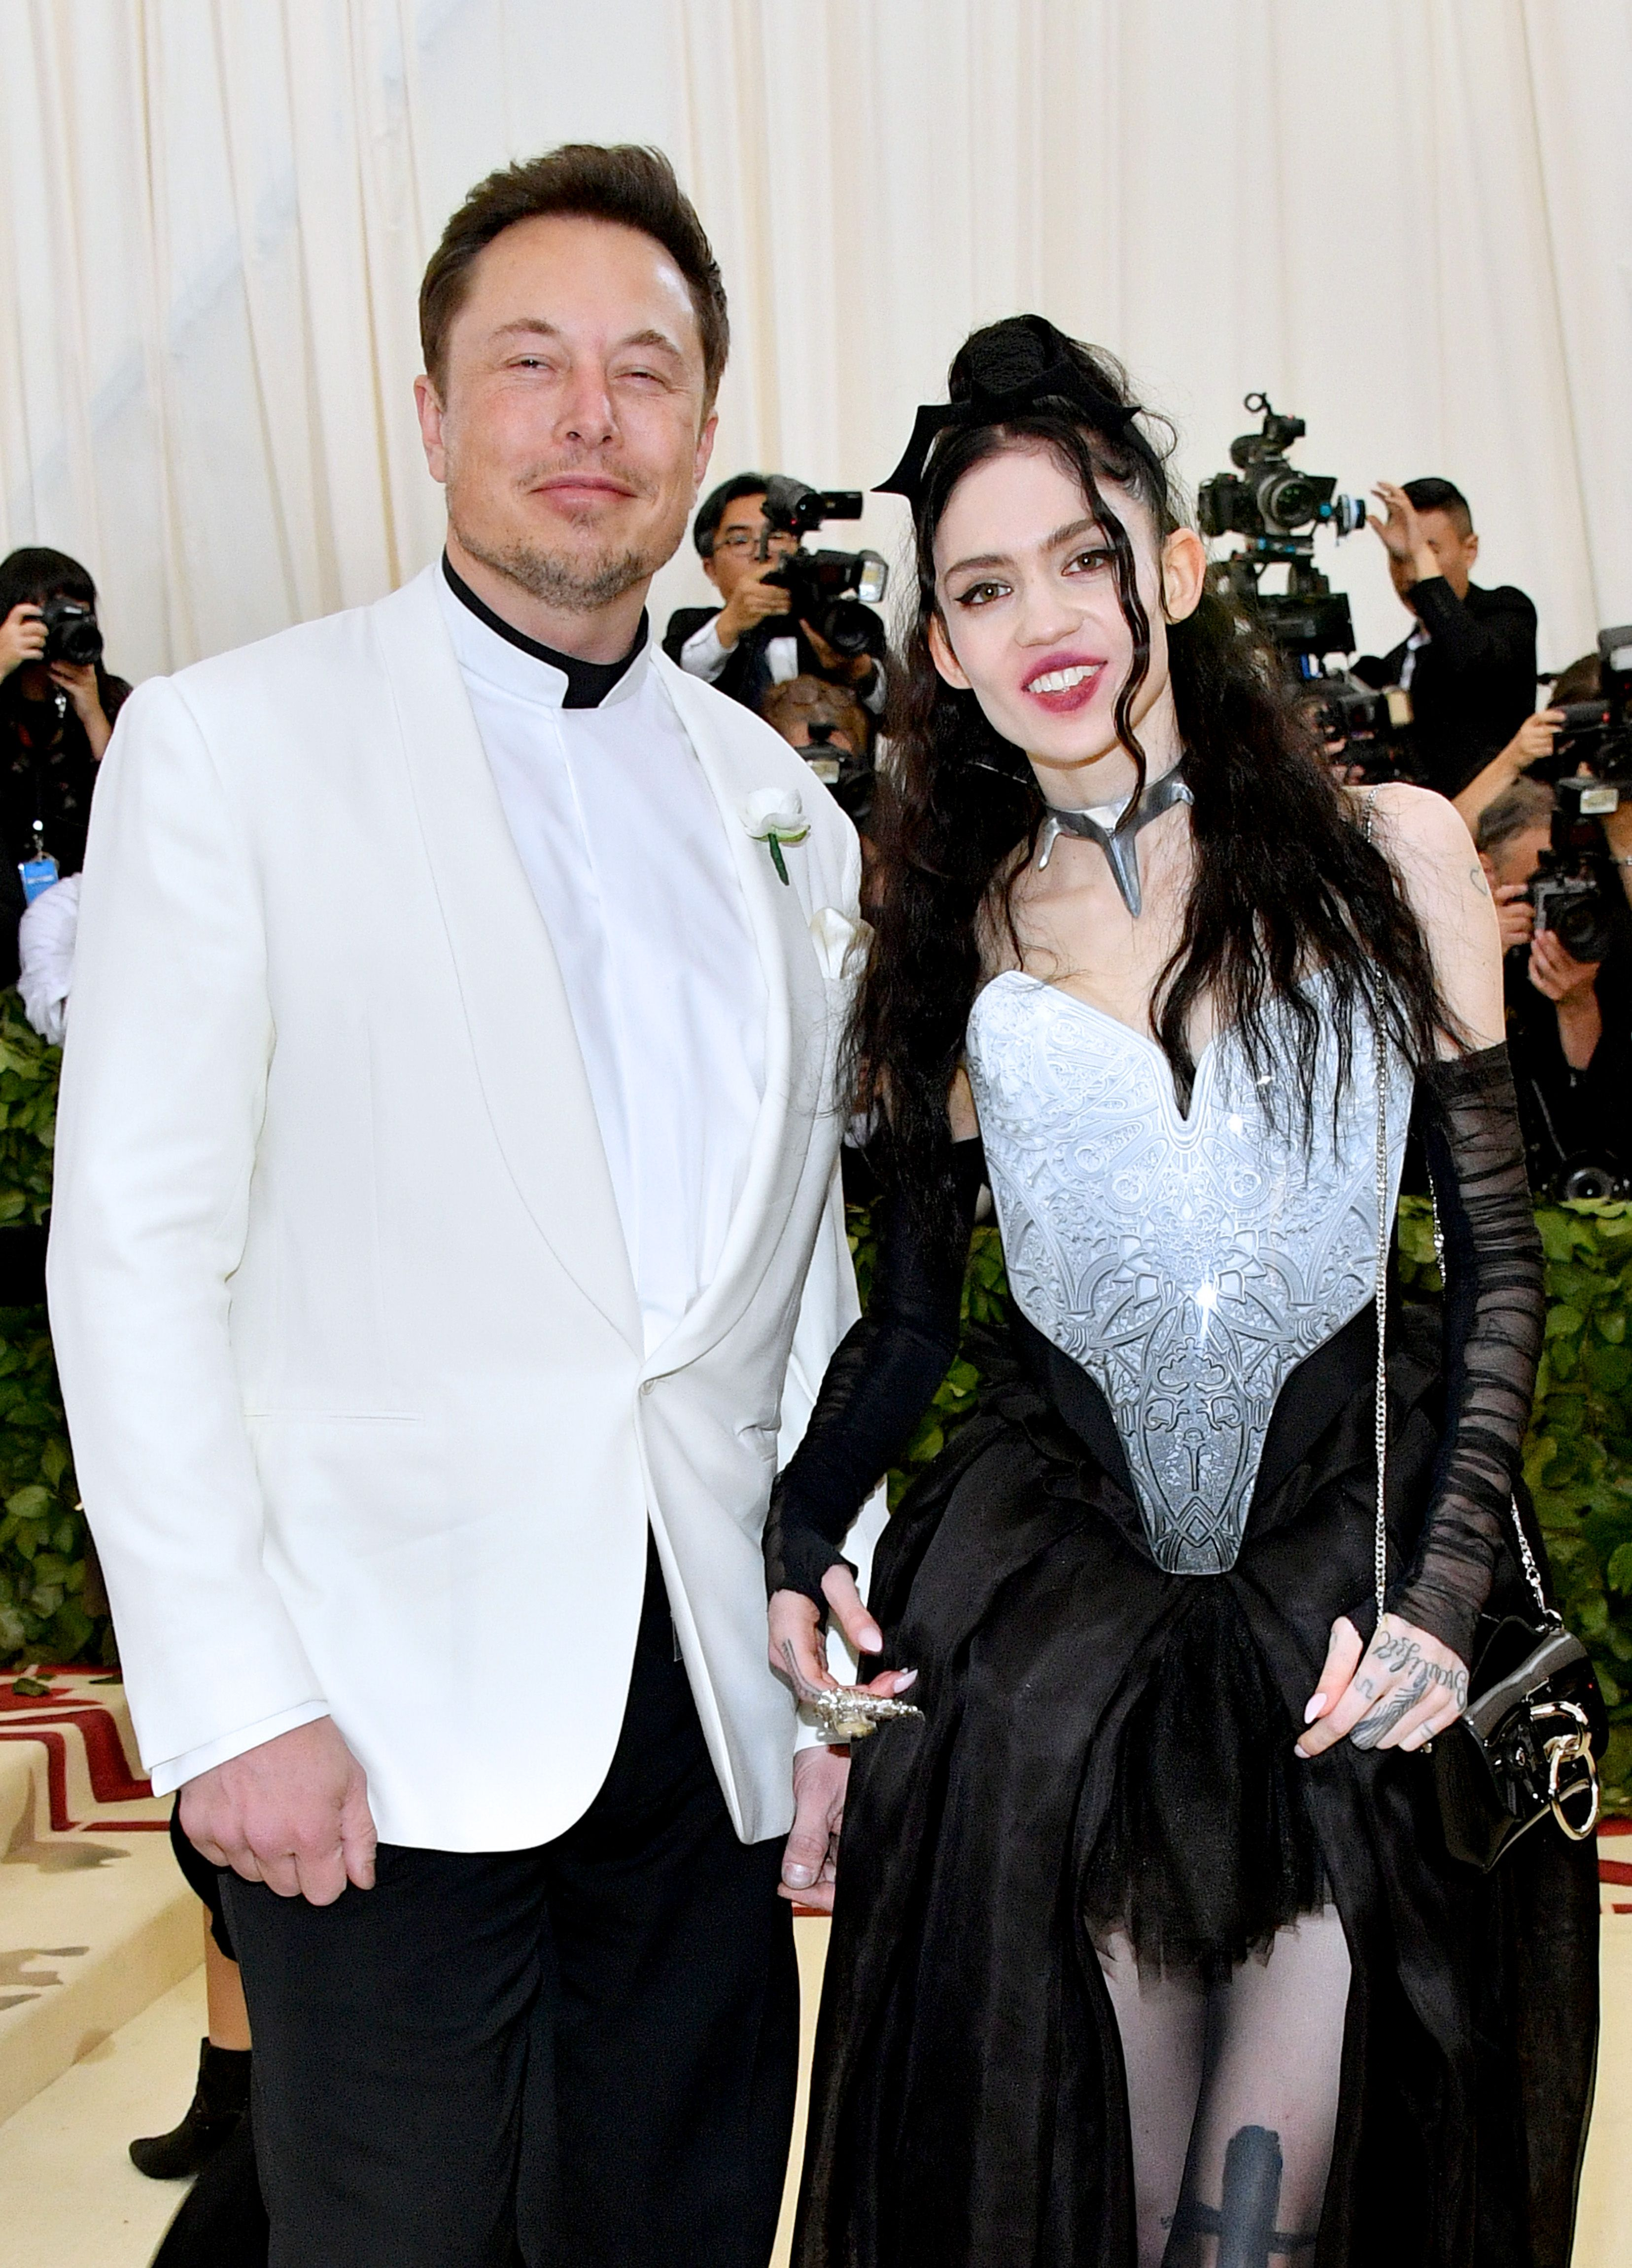 Elon Musk and Grimes pose for a photo.